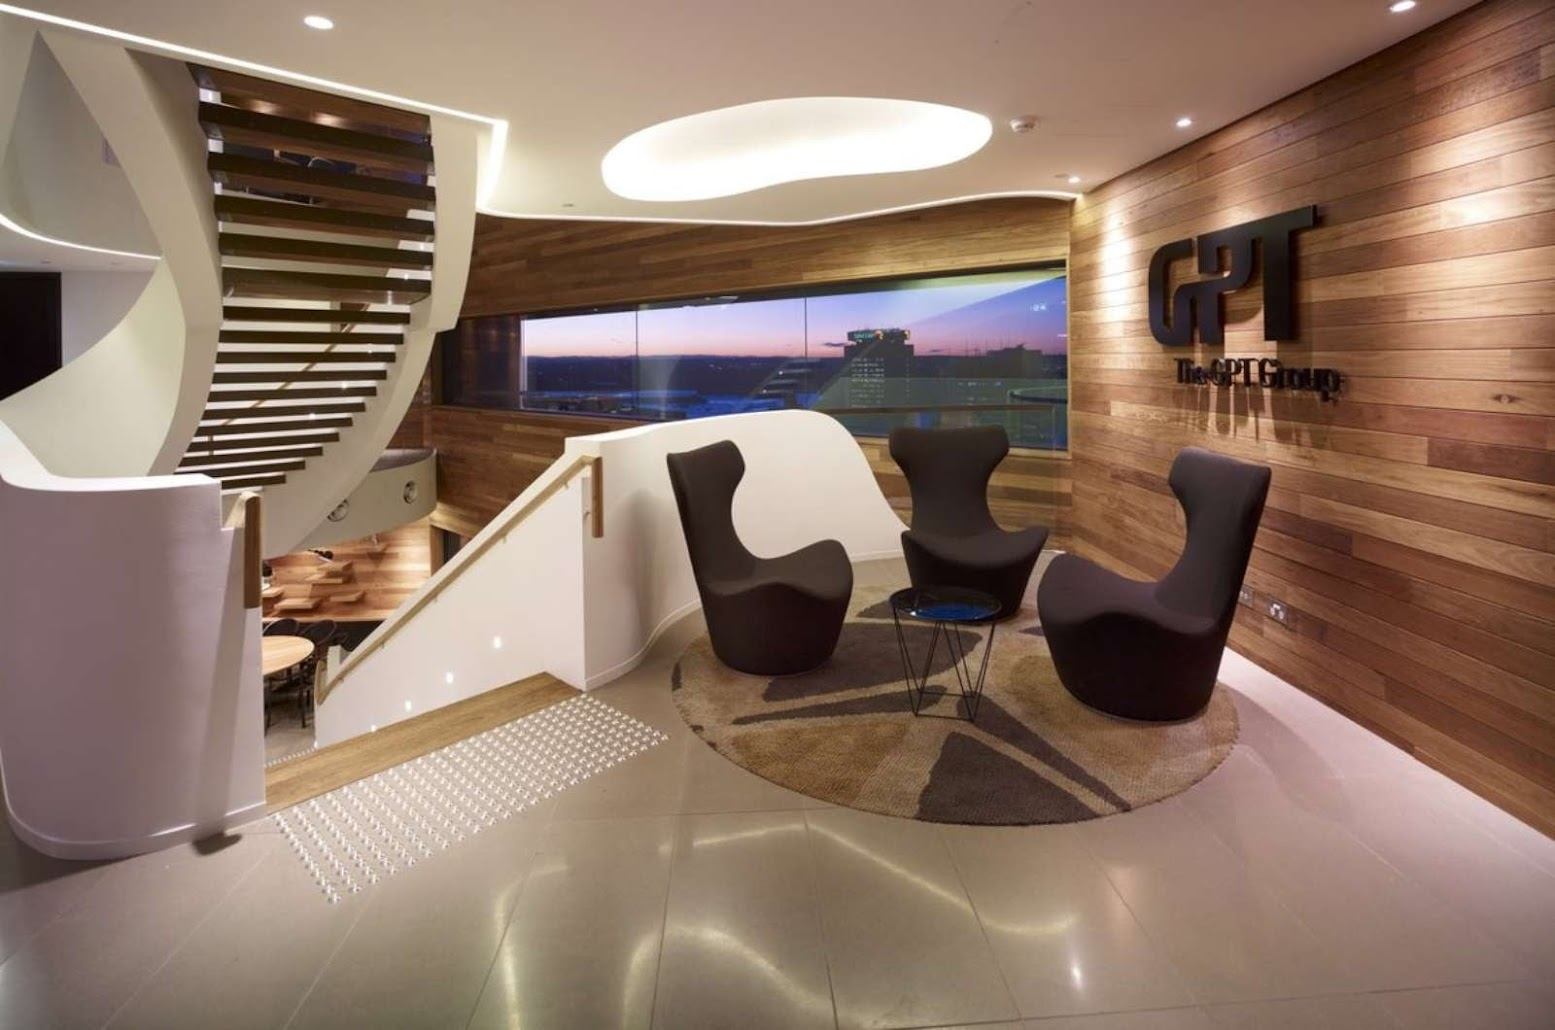 Sydney Nuovo Galles del Sud, Australia: [GPT GROUP HEADQUARTERS BY WOODS BAGOT WINS LIVEABLE OFFICE AWARD]